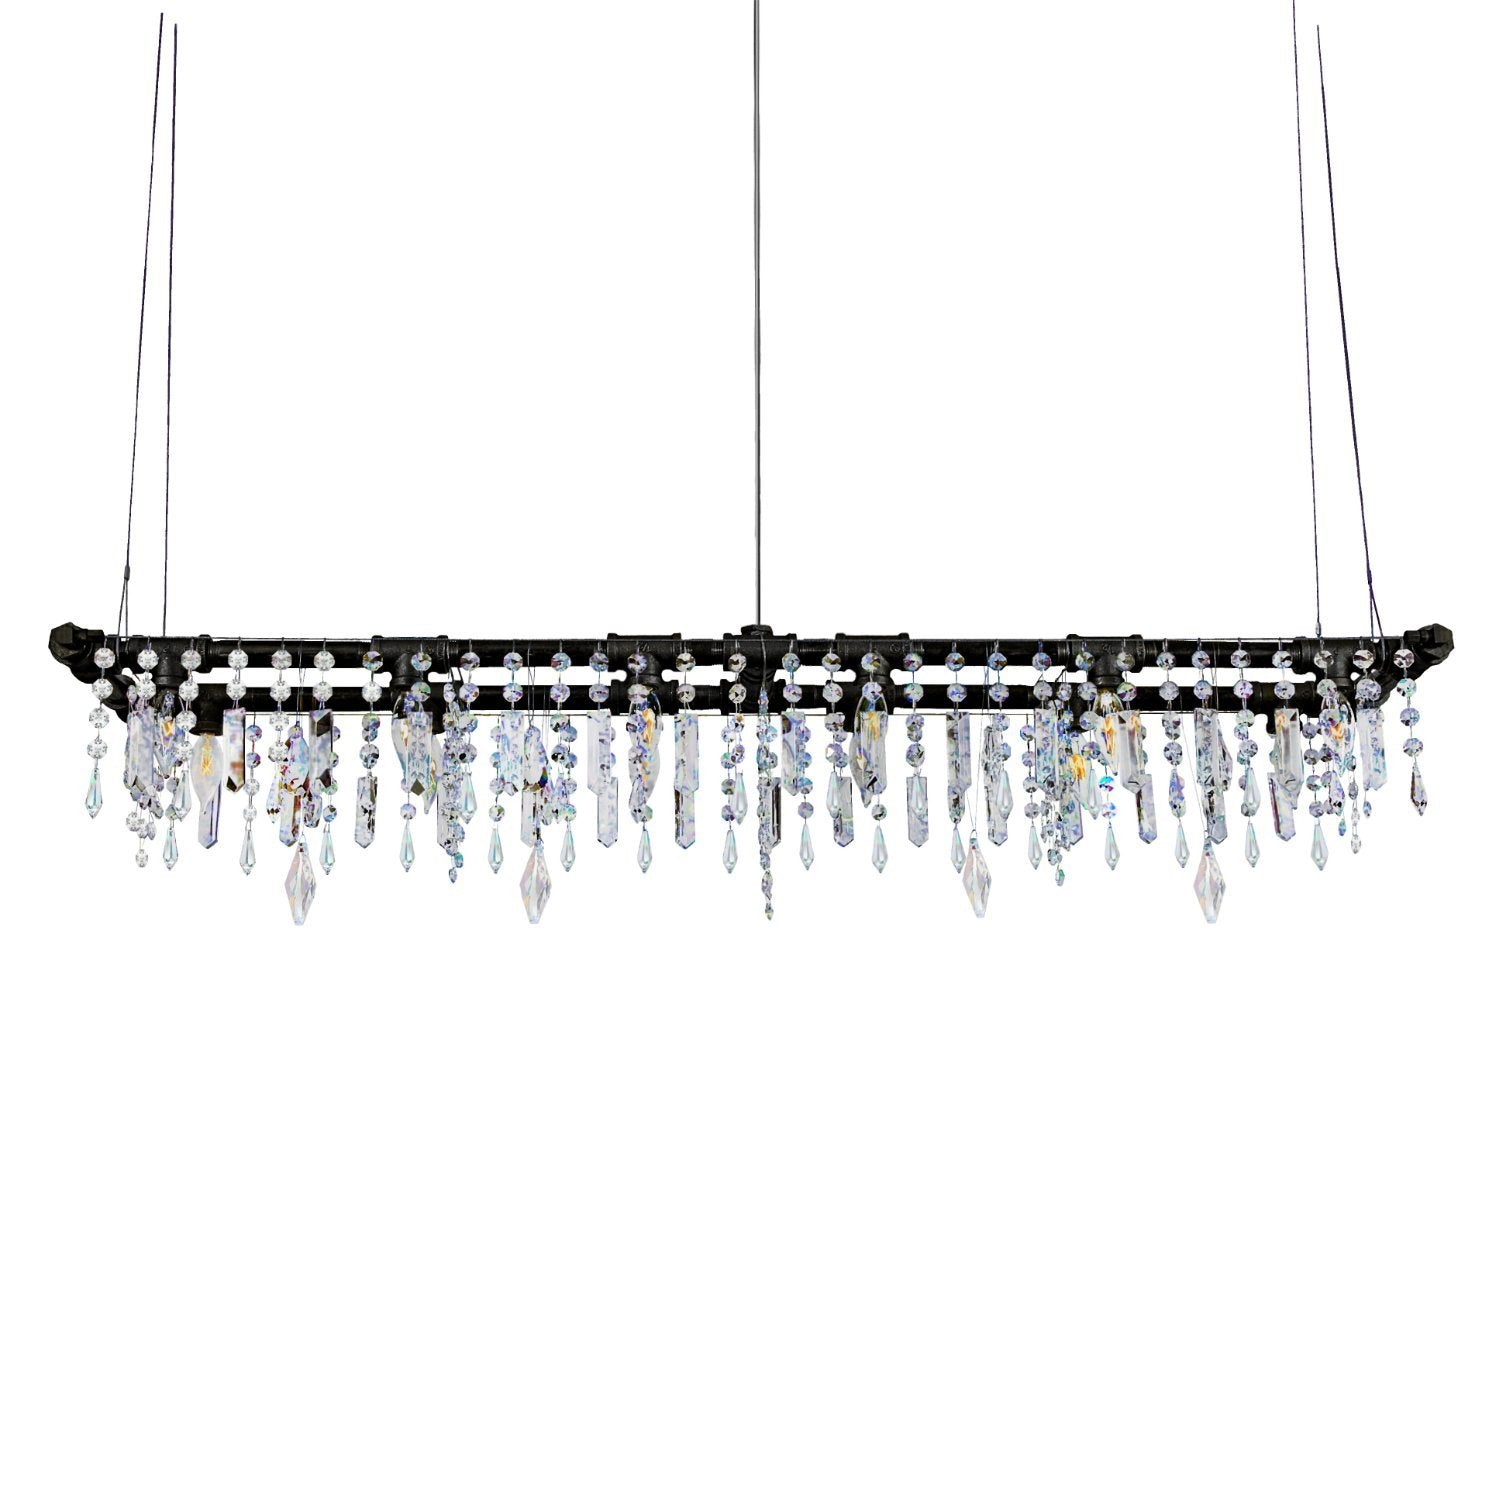 Tribeca 12-Bulb Banqueting Chandelier